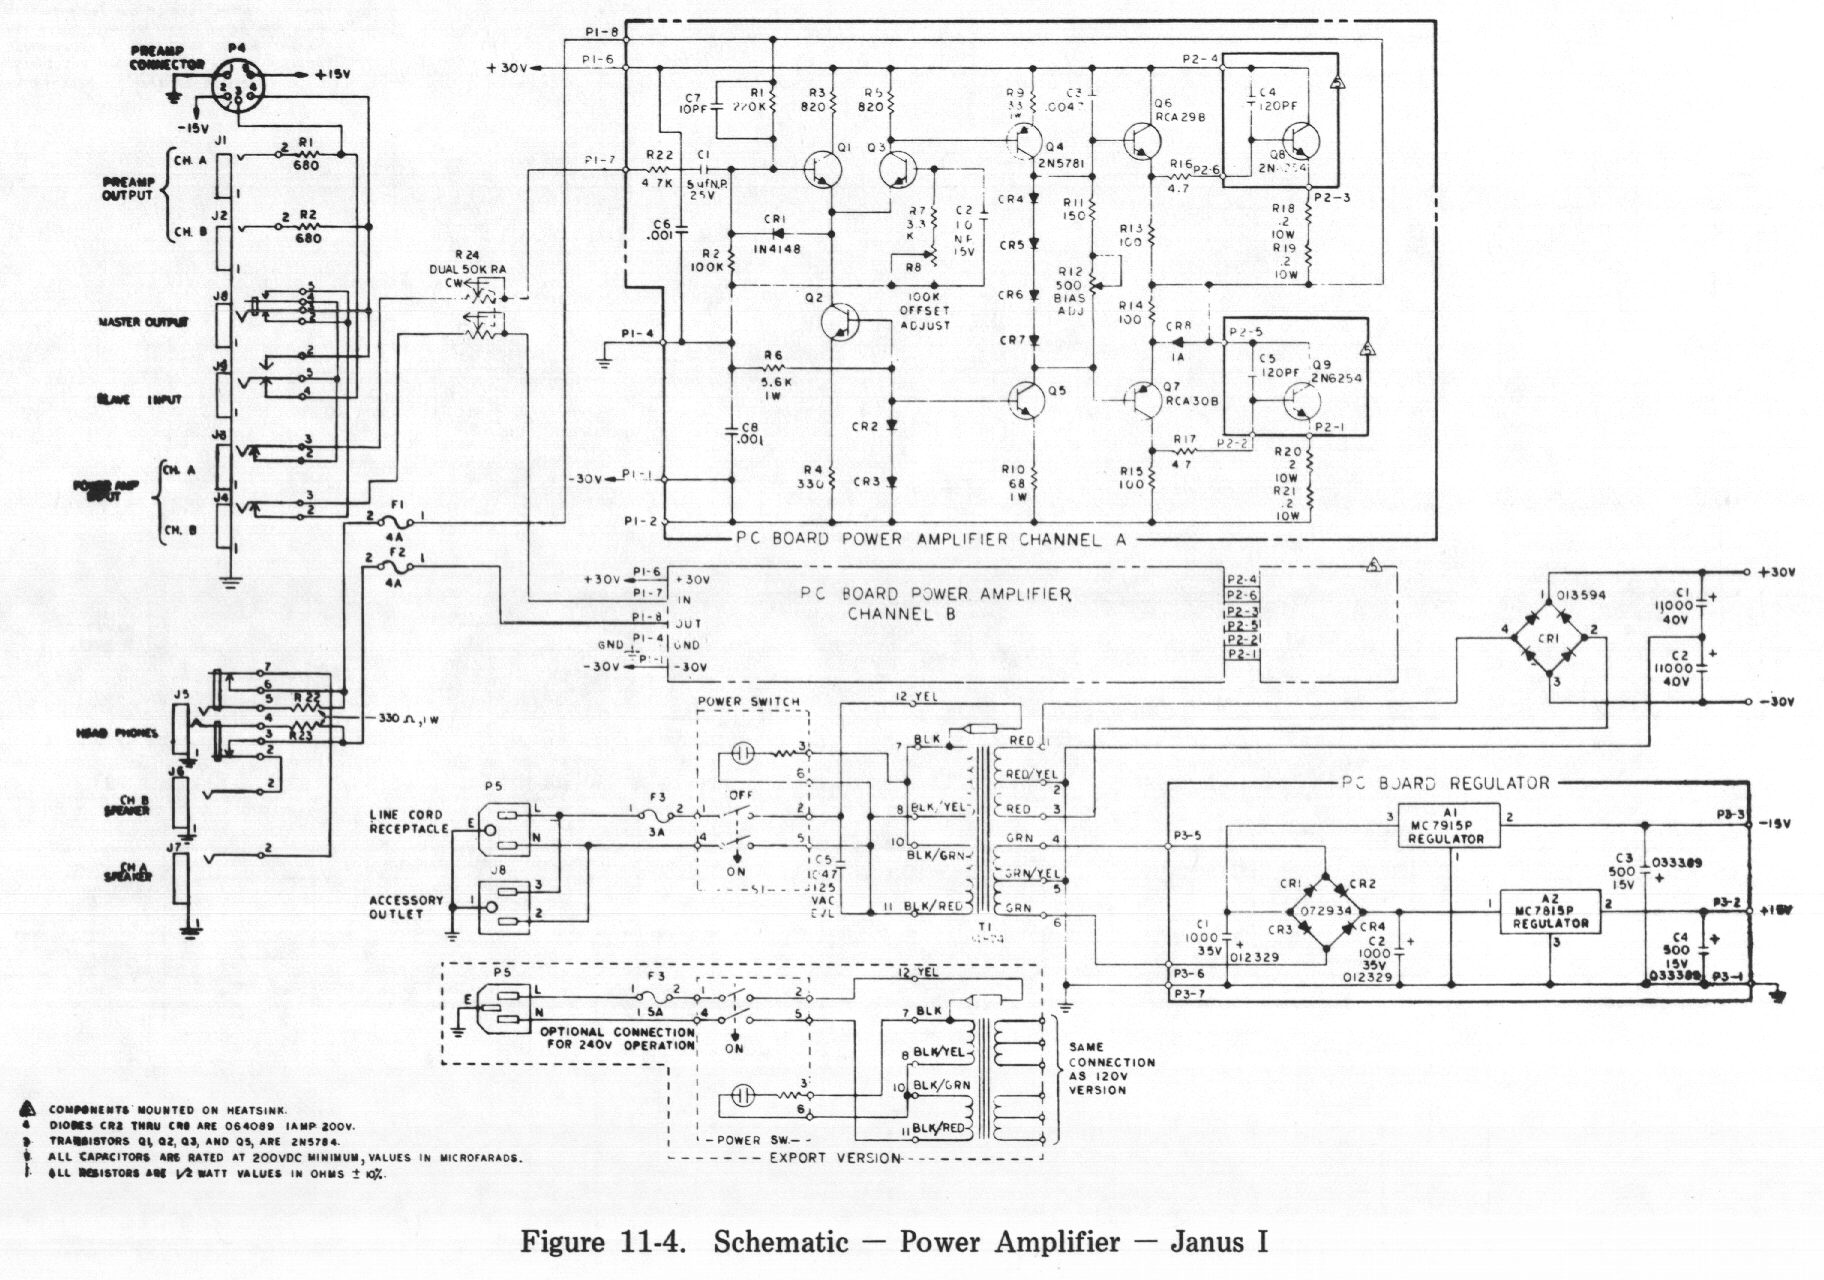 Chapter 11 Diagrams Schematics And Pictorials 25 Watt Power Amplifier Janus I